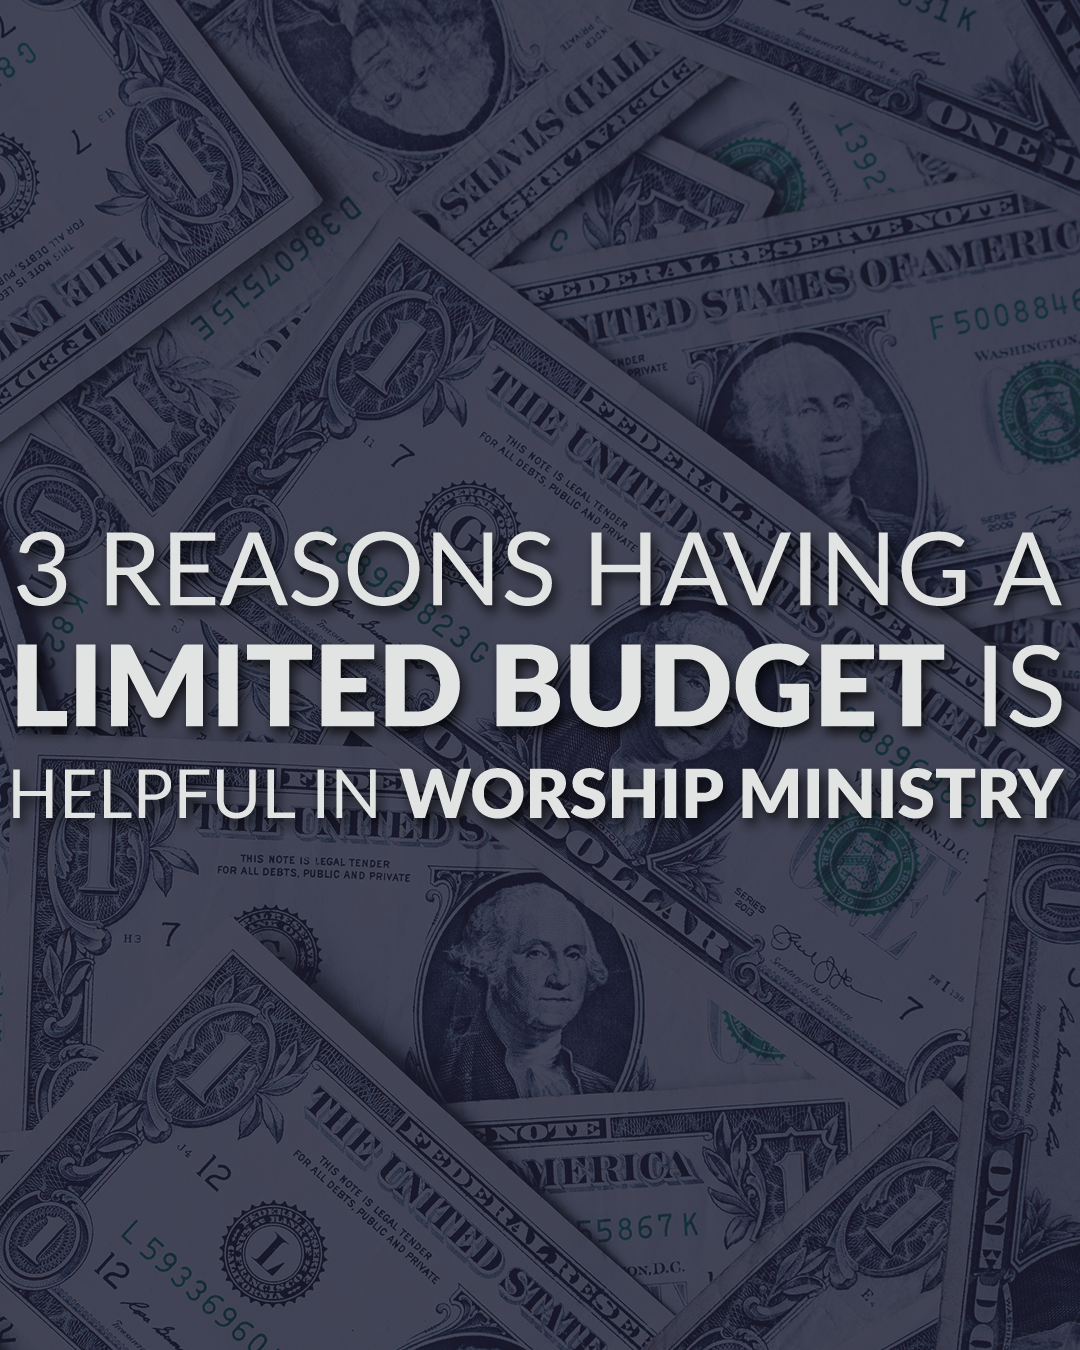 3 Reasons Having A Limited Budget Is Helpful In Worship Ministry